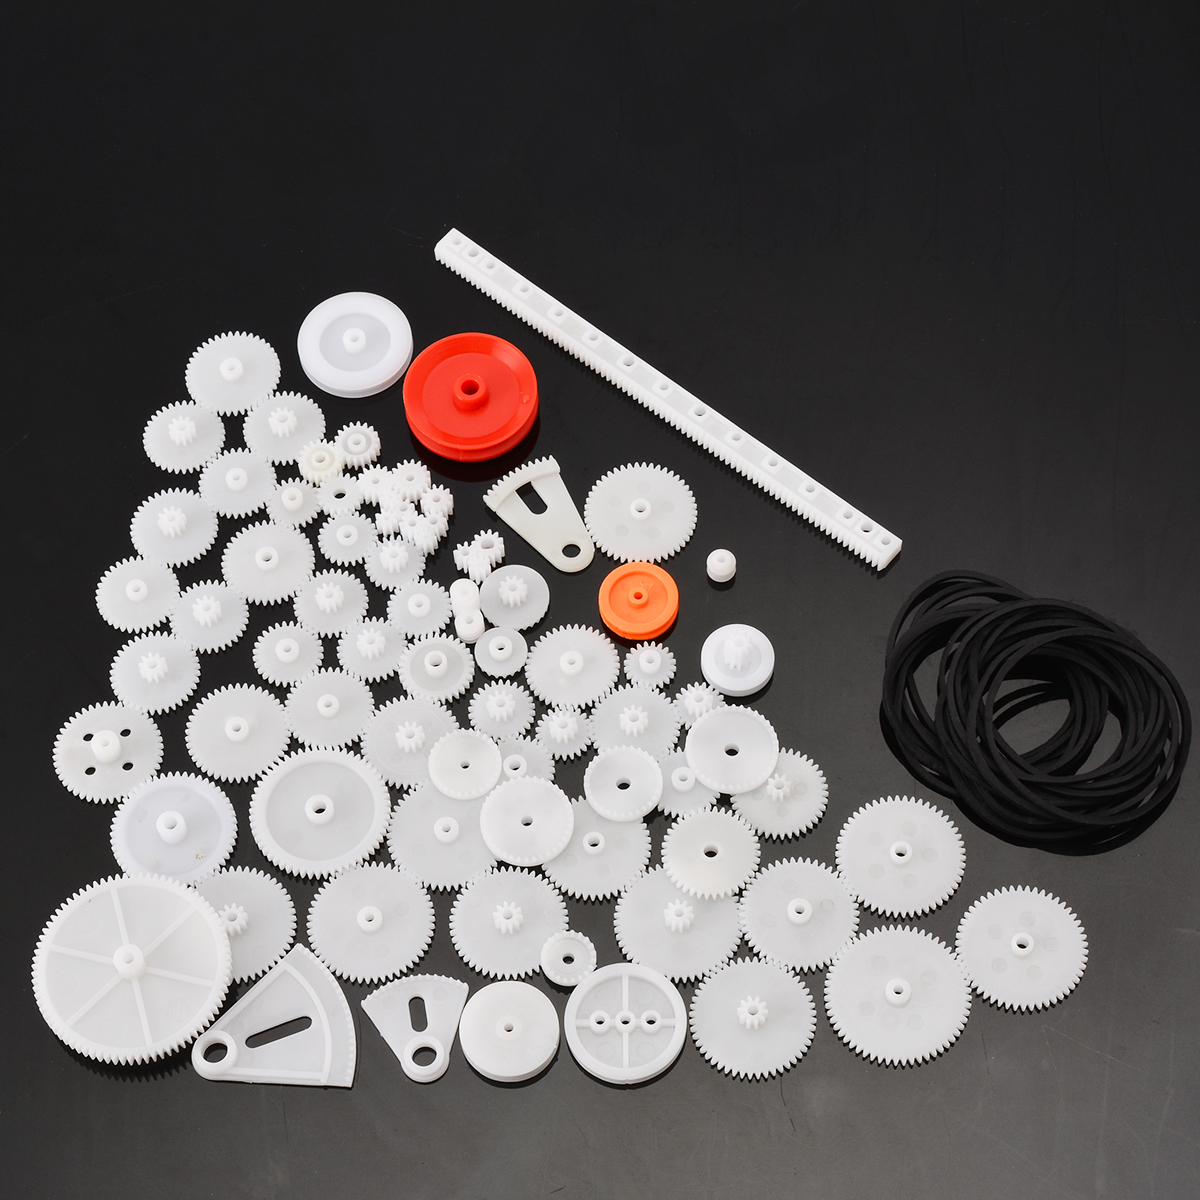 2019 New 81pcs New Plastic Gear Wheel Assorted Kit For Robot Toy Car Motor Shaft Model Crafts DIY